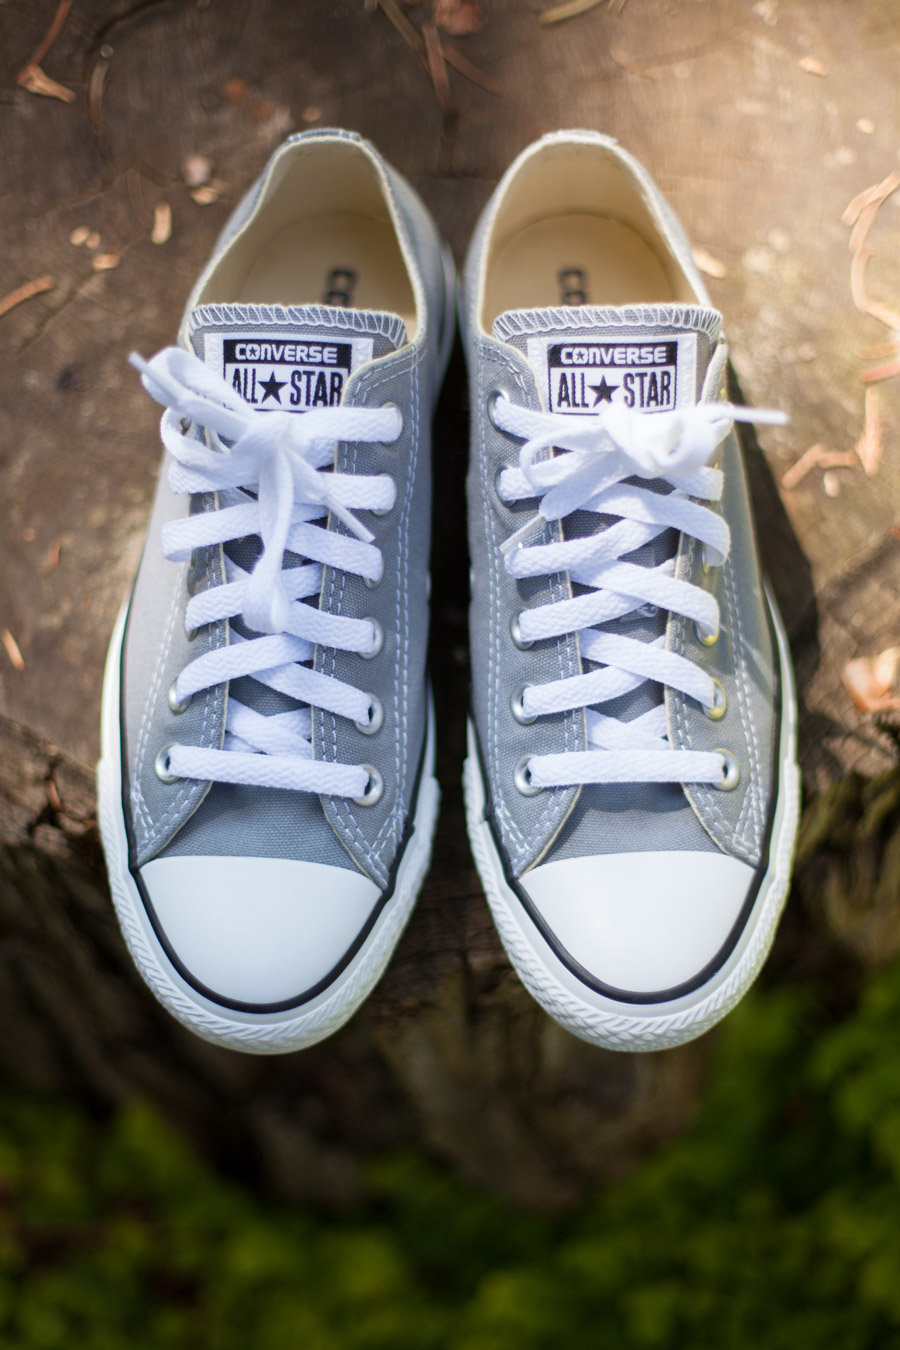 My Wedding Dress Story - Designing My Own Wedding Dress - Grey Chuck Taylor Converse - Wedding Shoes